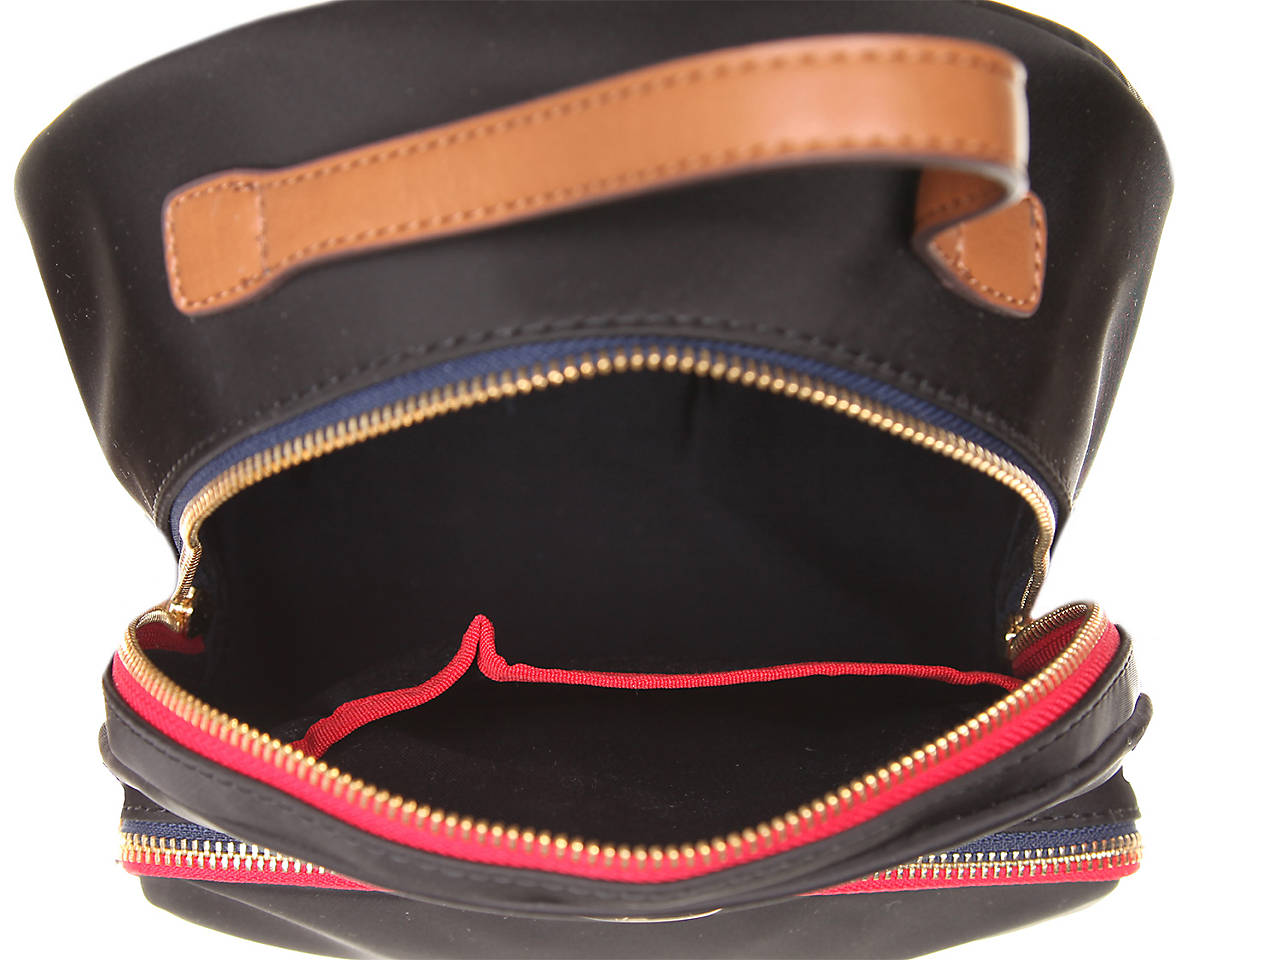 ce0f00bec0 Tommy Hilfiger Nylon Backpack Women s Handbags   Accessories